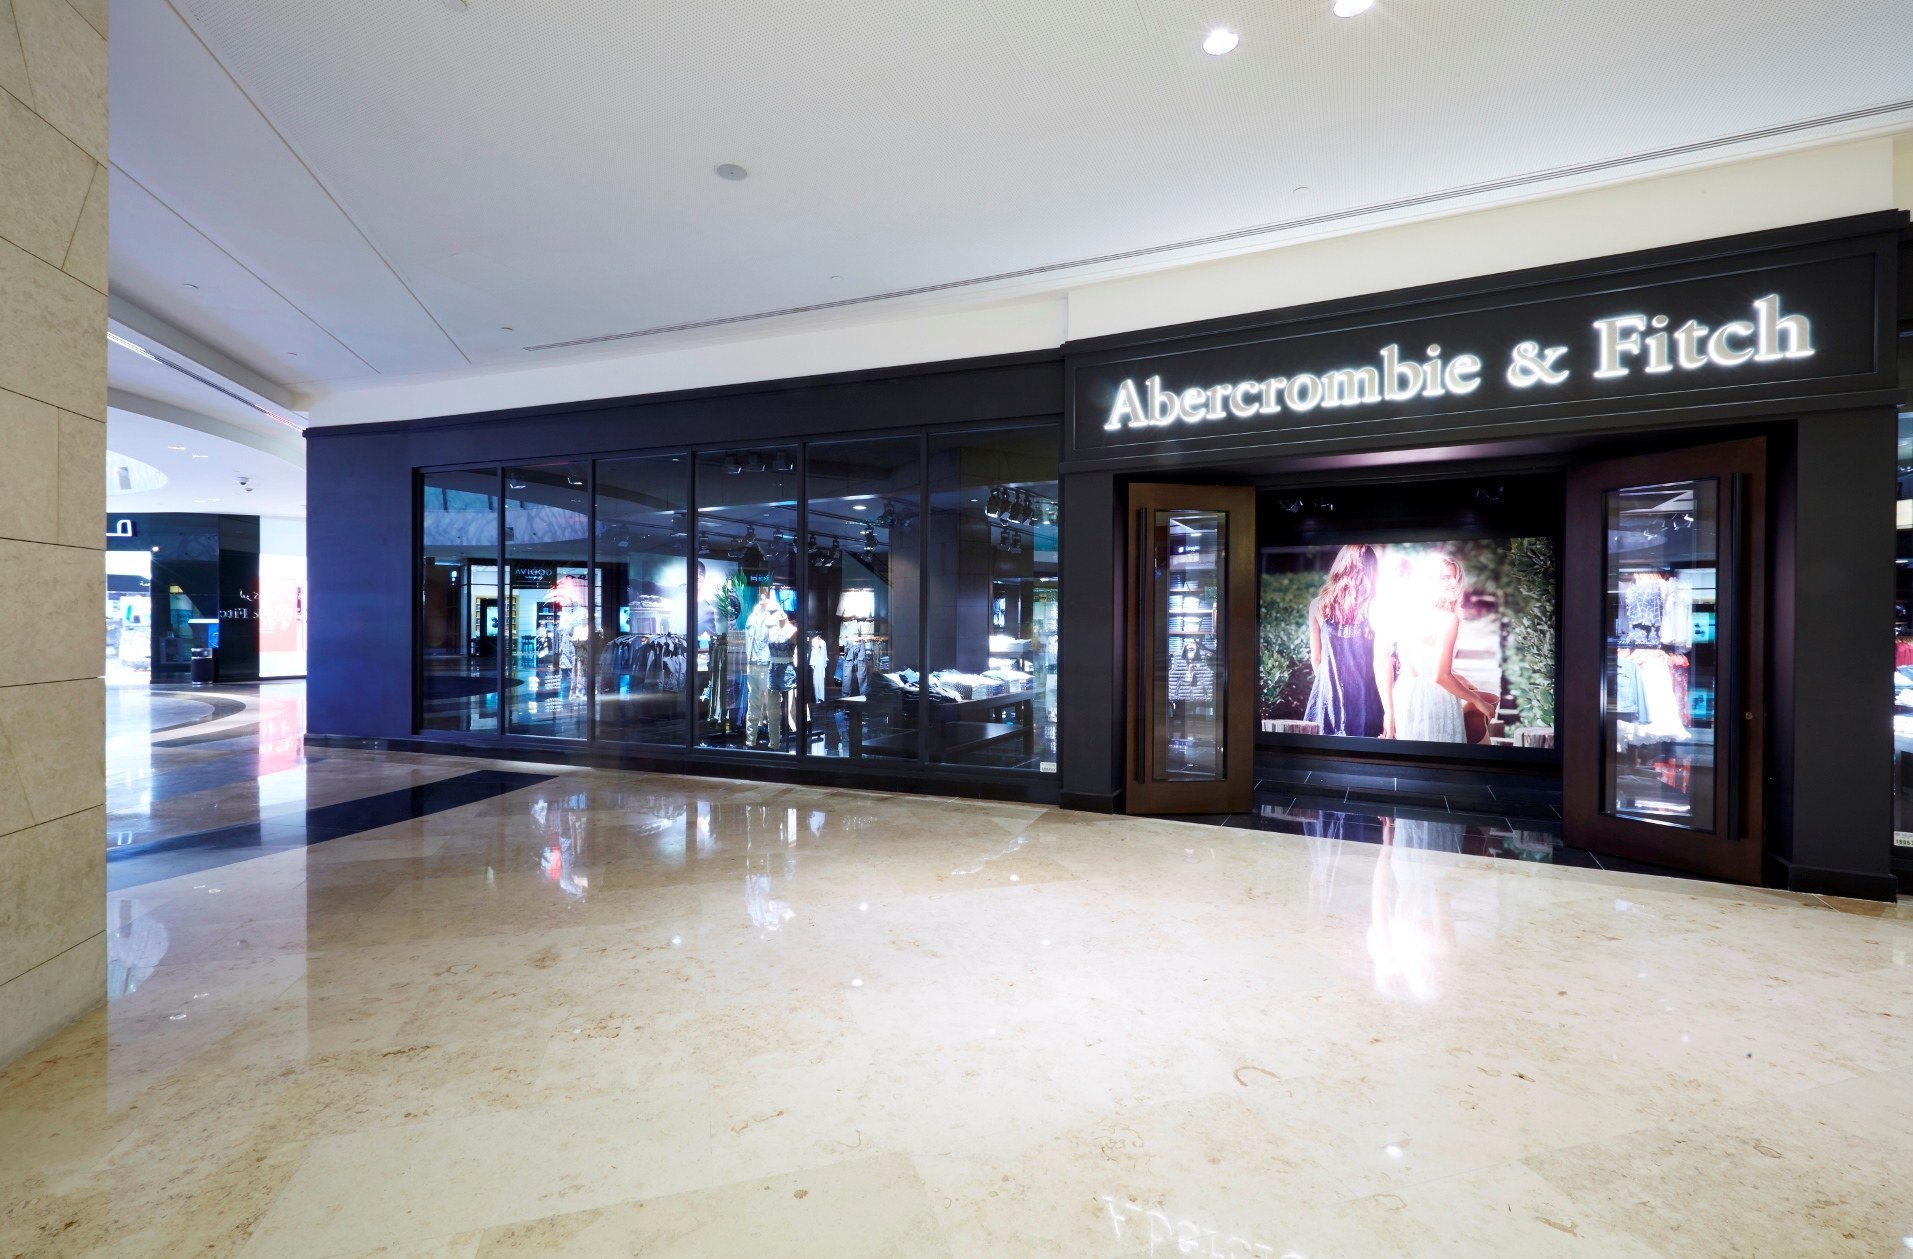 abercrombie and fitch international expansion Us teen apparel retailer abercrombie & fitch (anf  plans to speed up its  expansion in more profitable markets overseas, sending shares up.